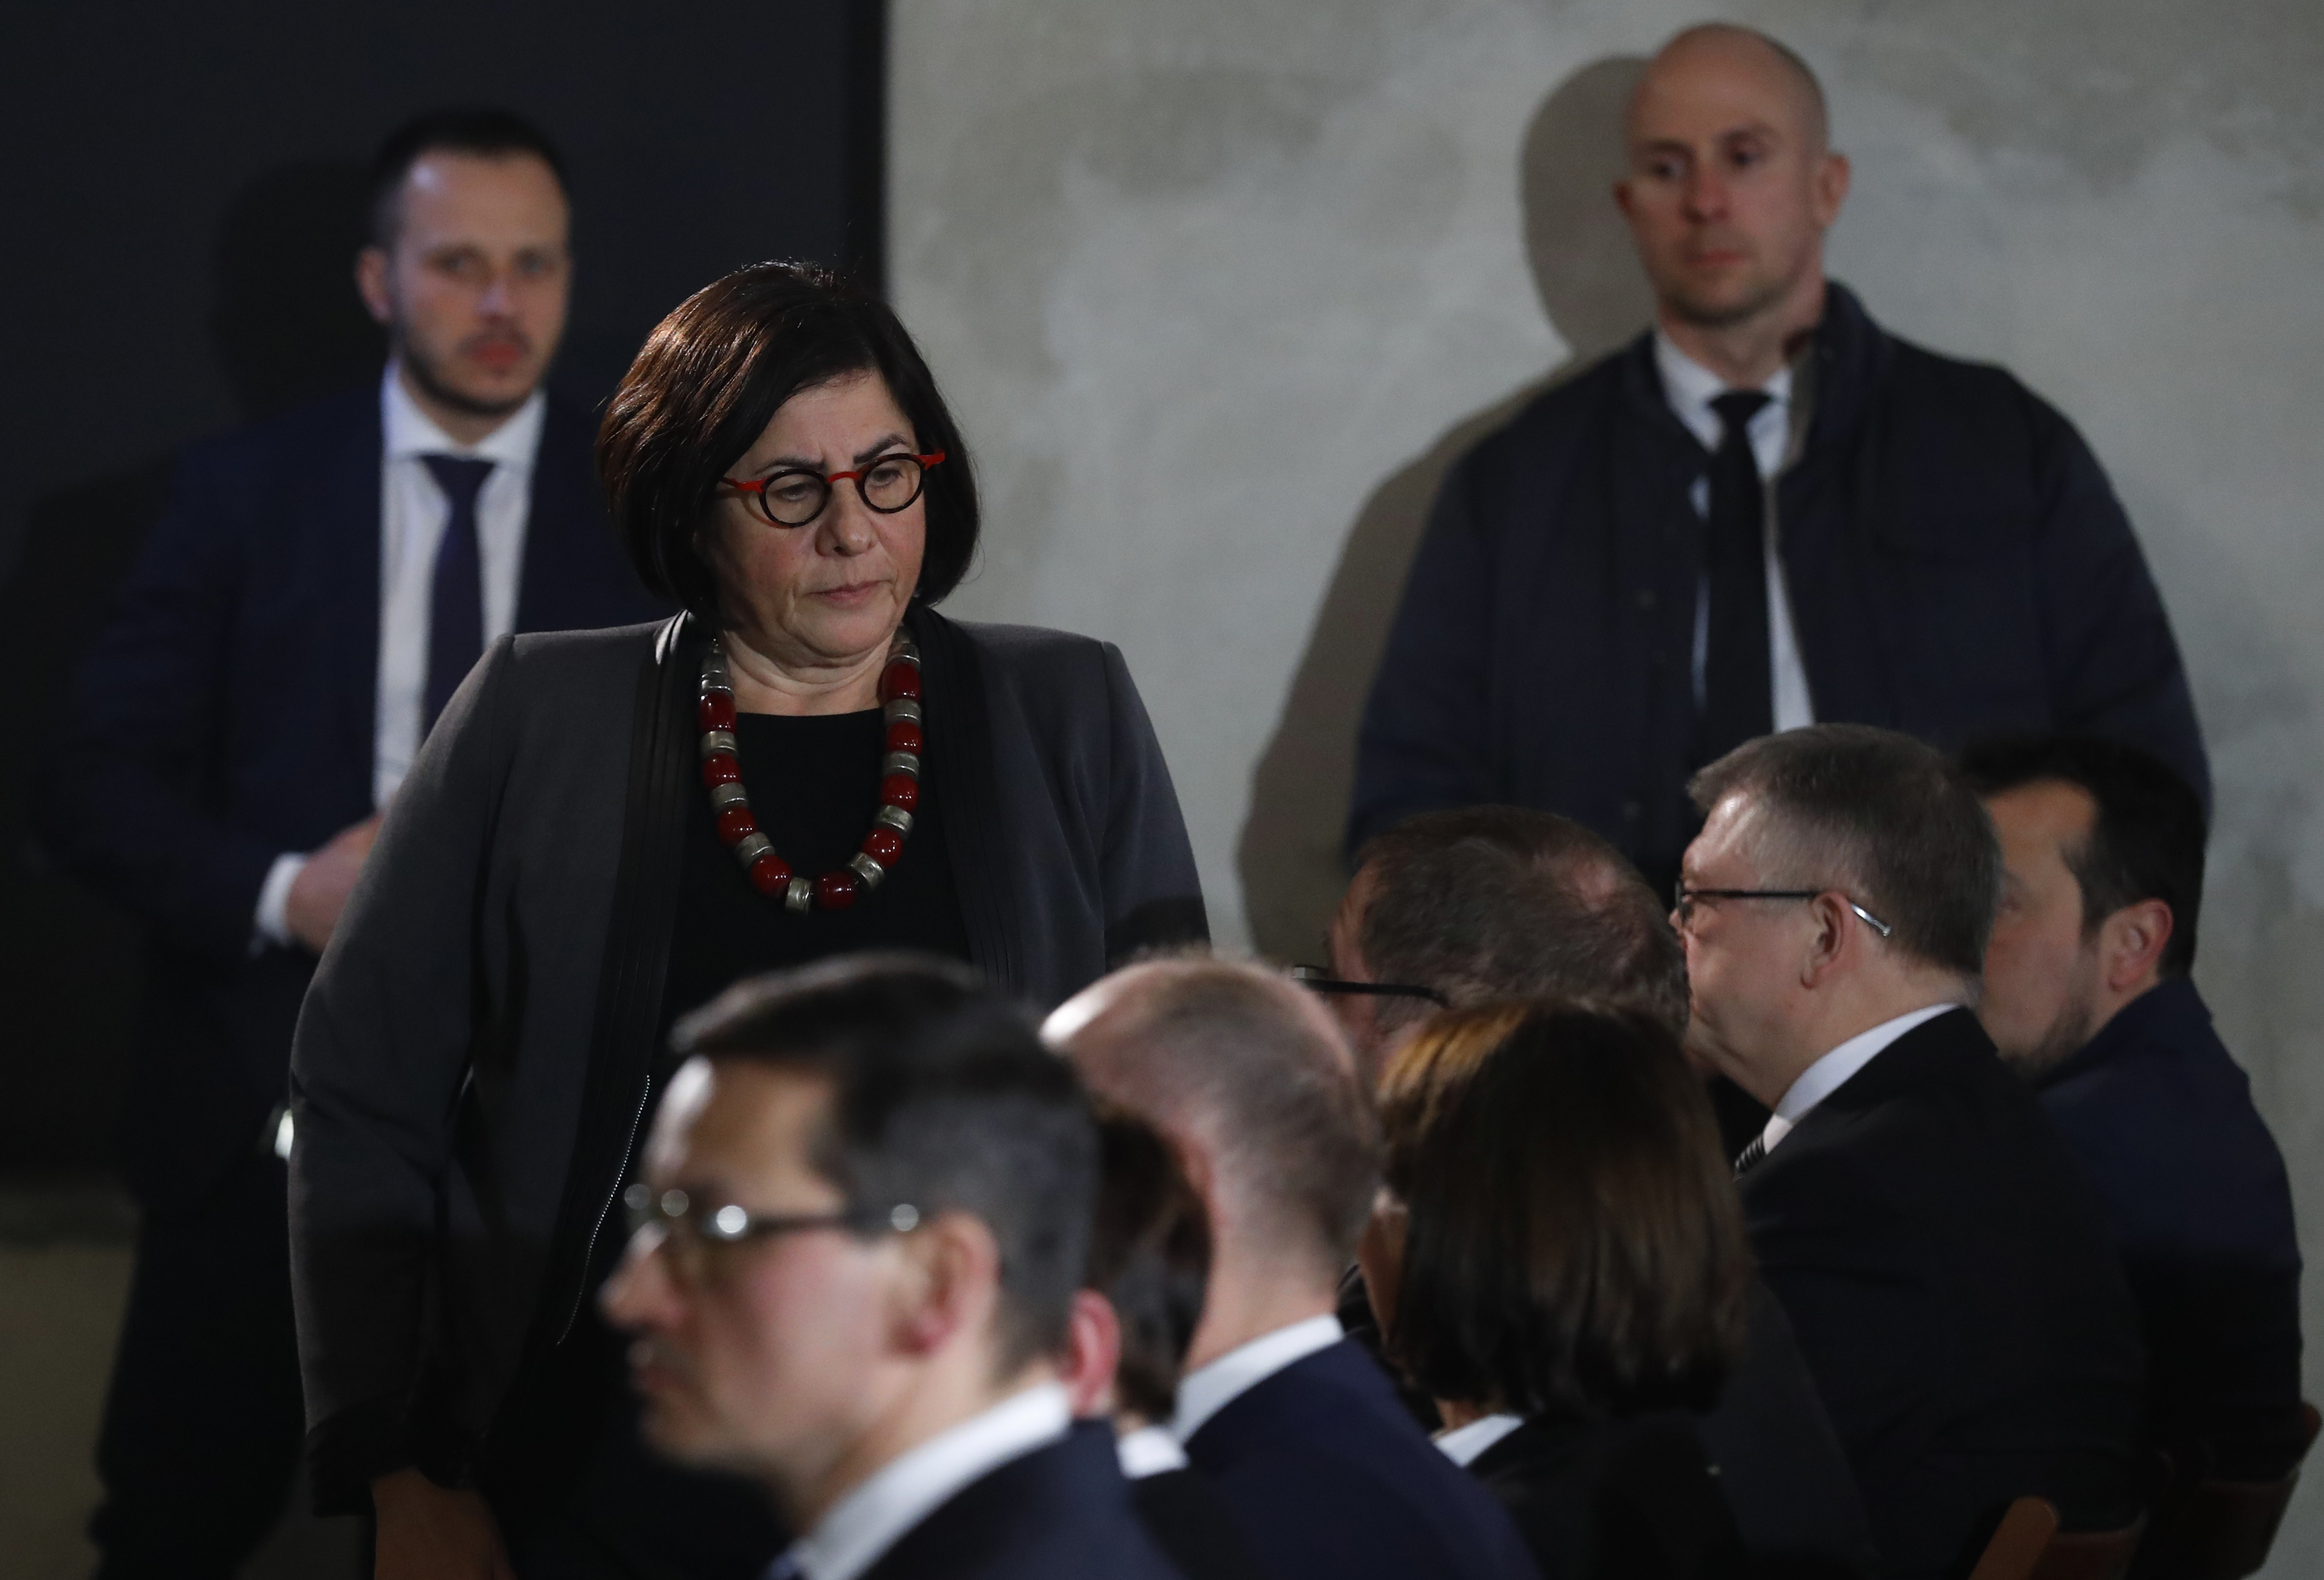 """Ambassador of Israel to Poland Anna Azari attends a commemoration event in the so-called """"Sauna"""" building at the former Nazi German concentration and extermination camp Auschwitz II-Birkenau, January 27, 2018 (REUTERS/KACPER PEMPEL)"""